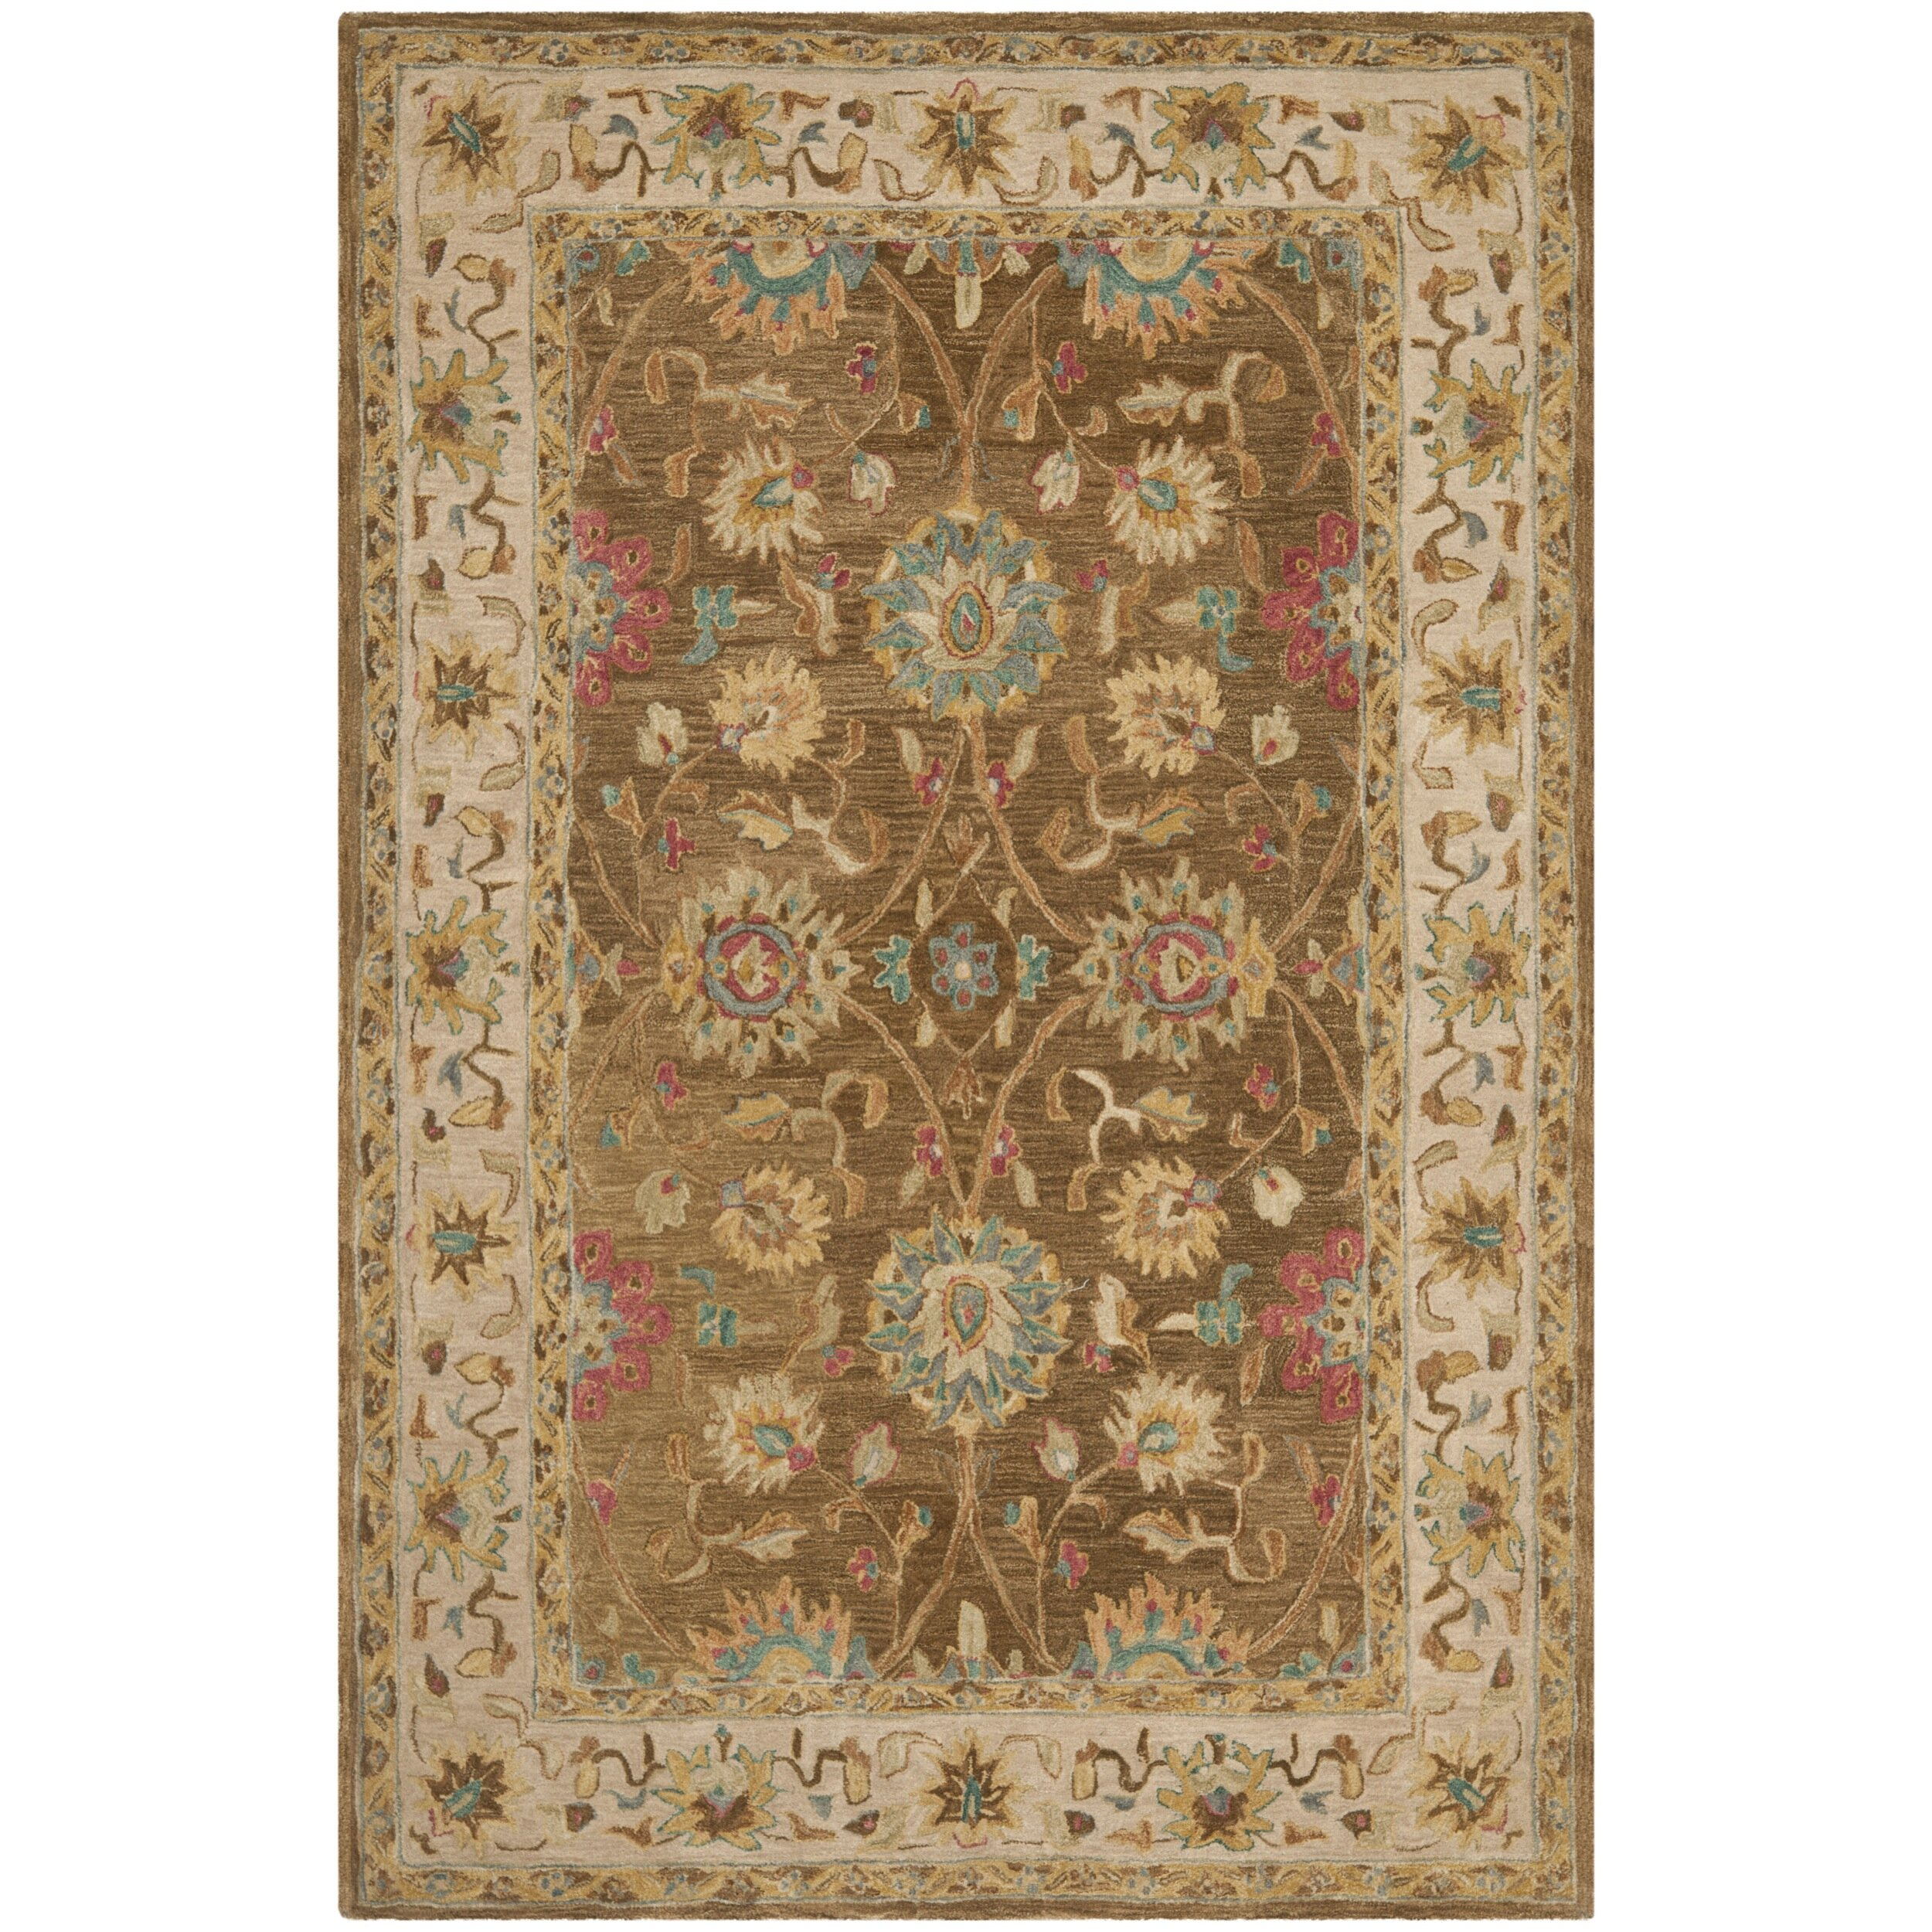 Safavieh Rug Review